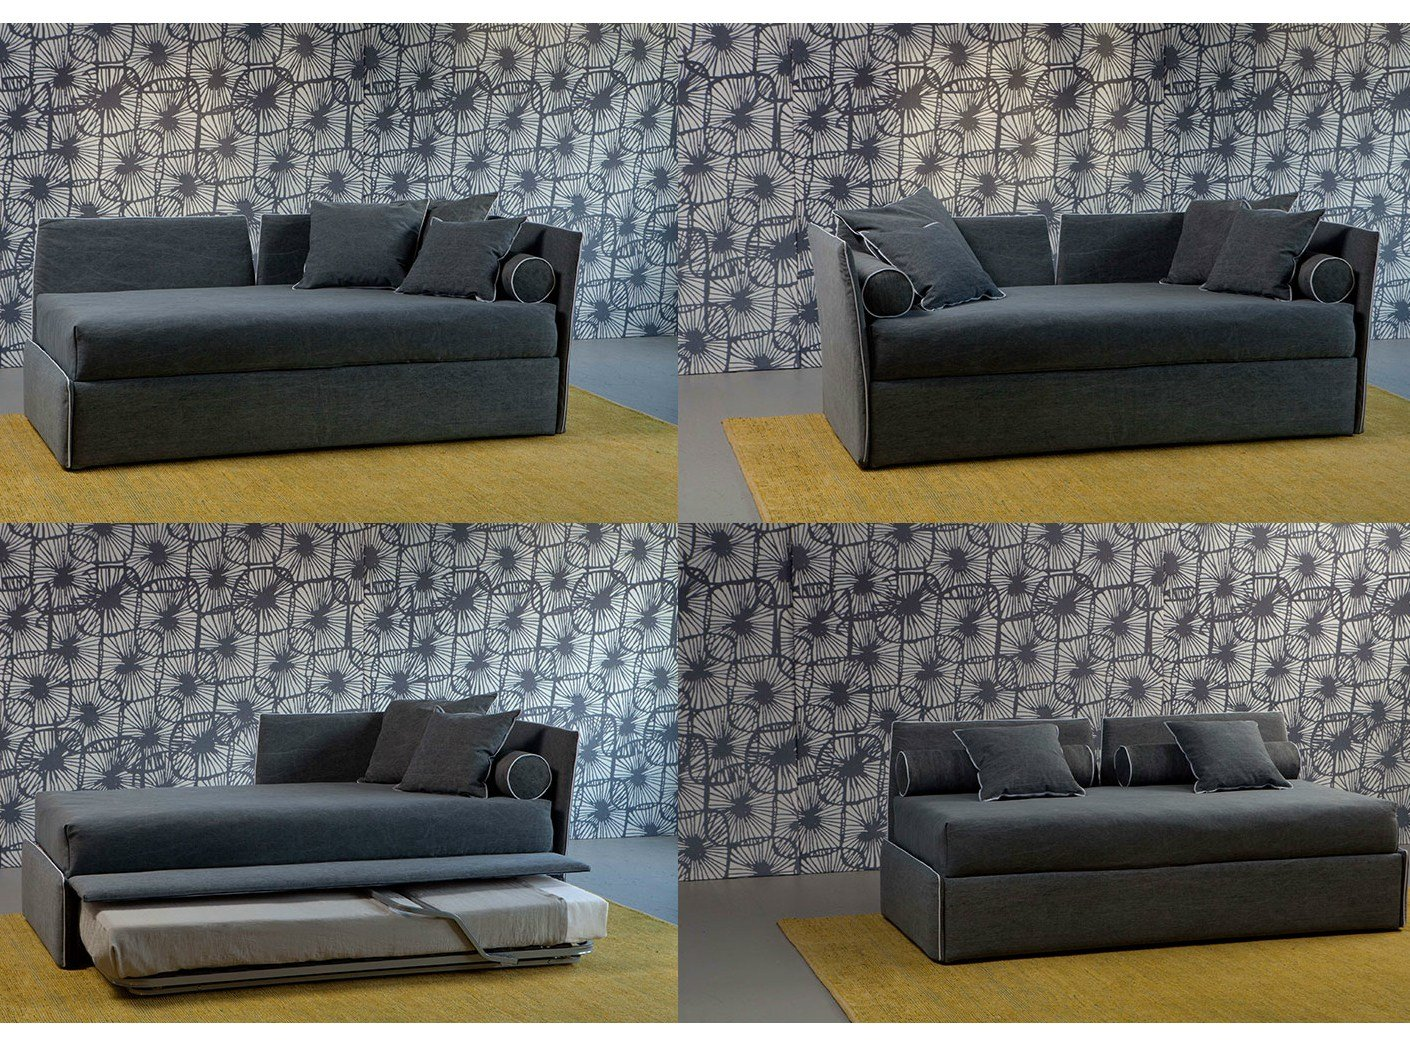 Convertible Sofa Bed OPEN By Letti Co Design Paola Navone